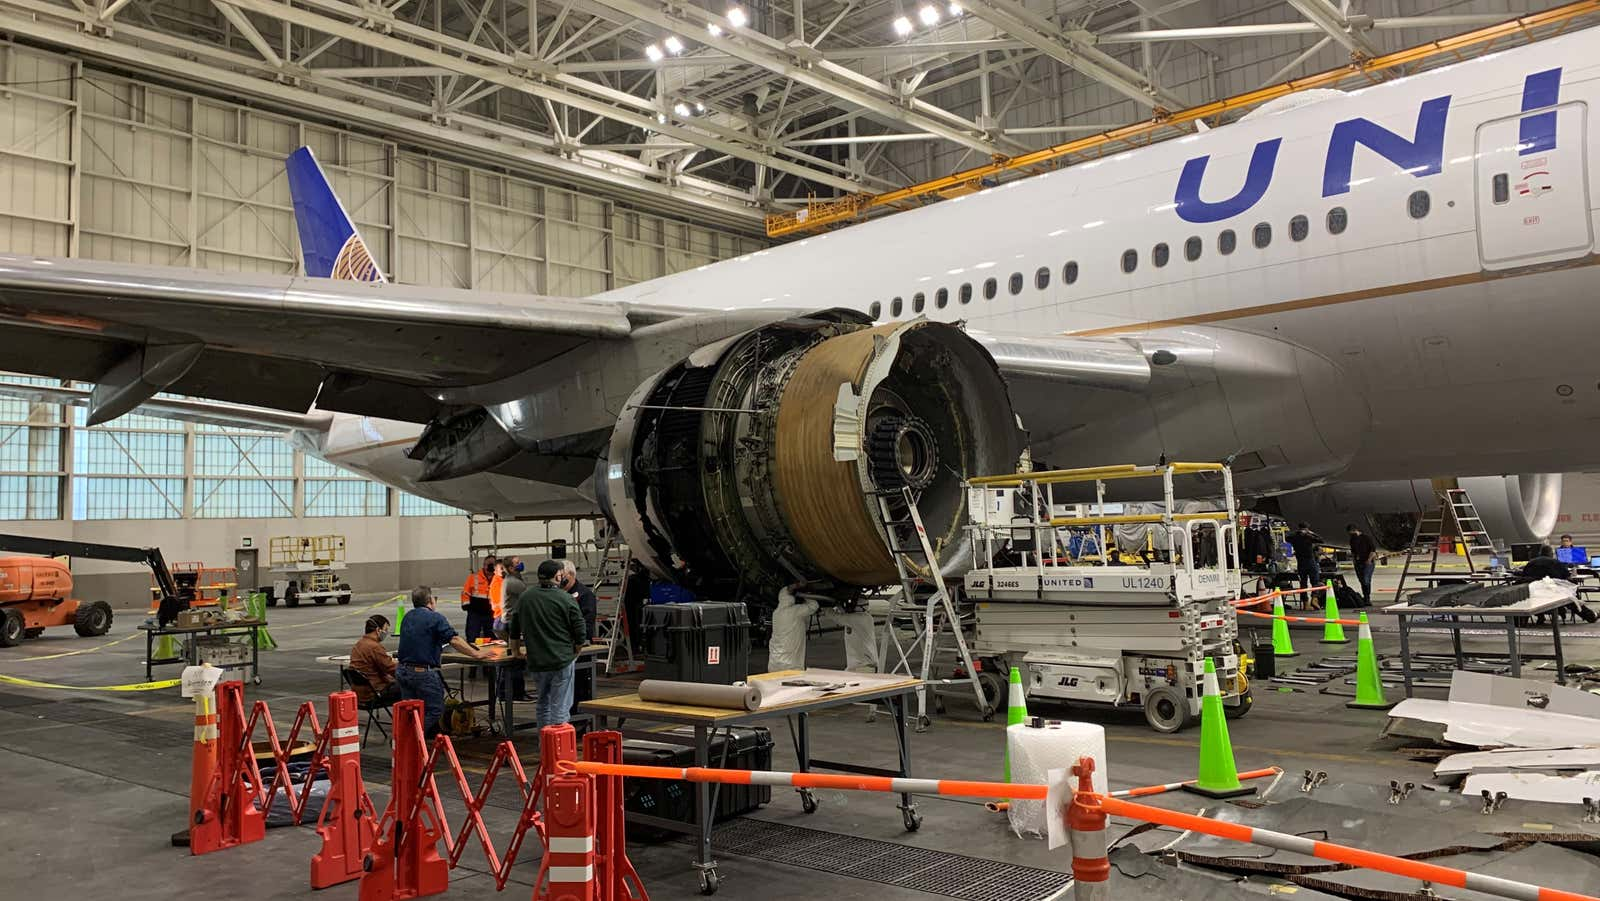 That Boeing 777 Engine Failure Actually Tore A Hole In The Plane's Fuselage